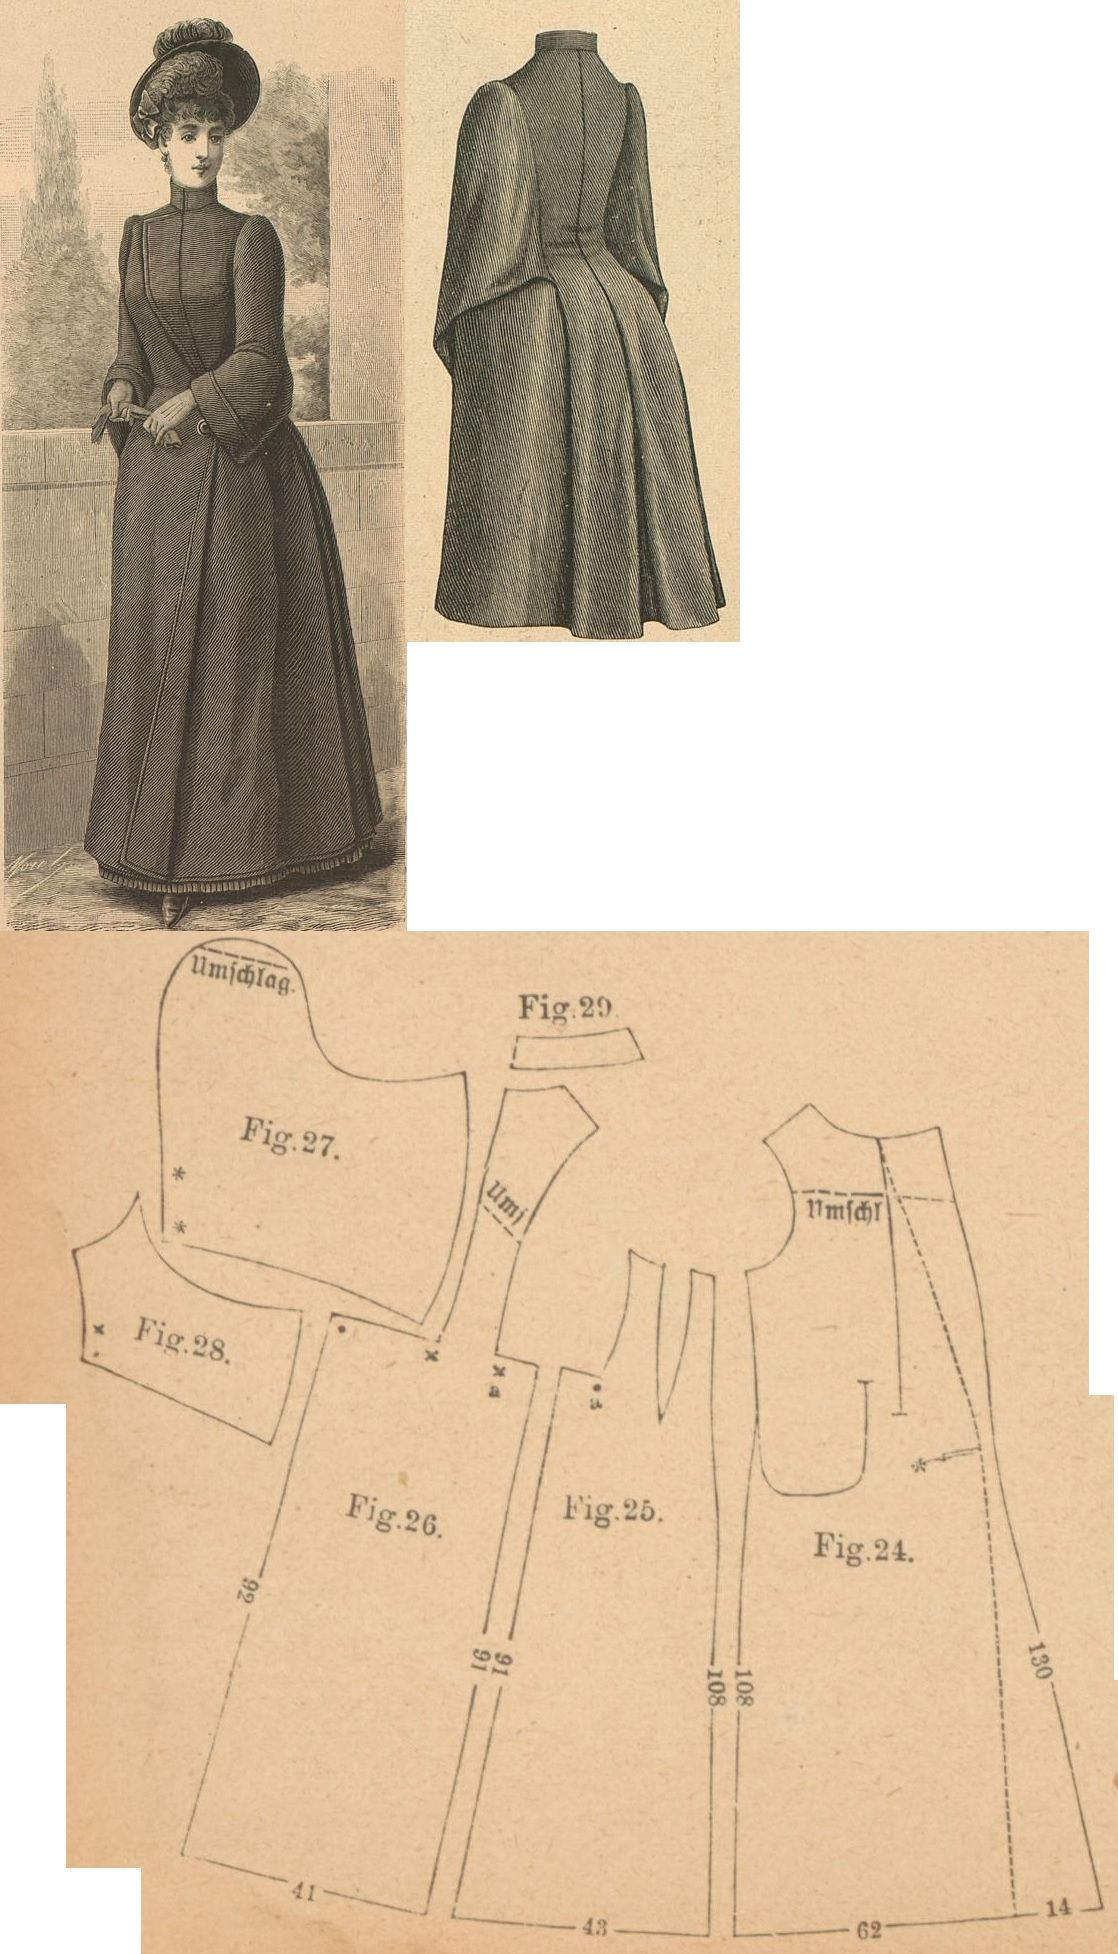 Der Bazar 1888: Raincape from grey cheviot with atlas lining; 24. front part, 25. side gore, 26. back part in half size, 27. and 28. over- and undersleeve parts, 29. collar in half size